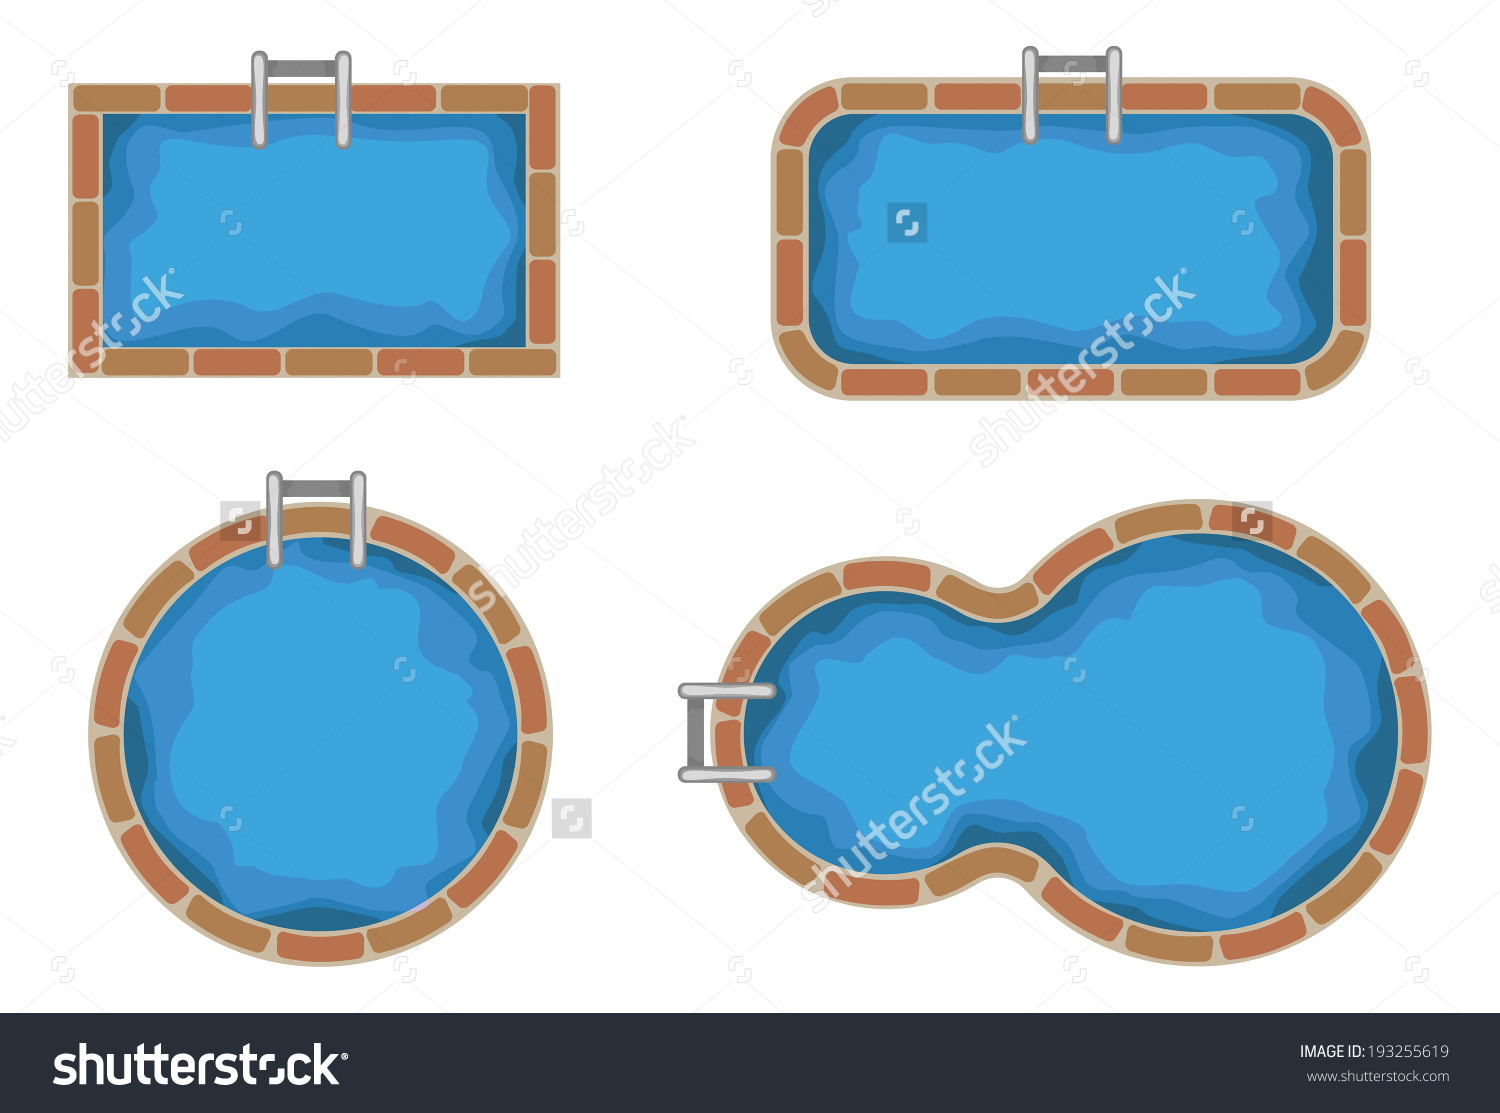 Swimming Pools Top View Stock Vector 193255619.